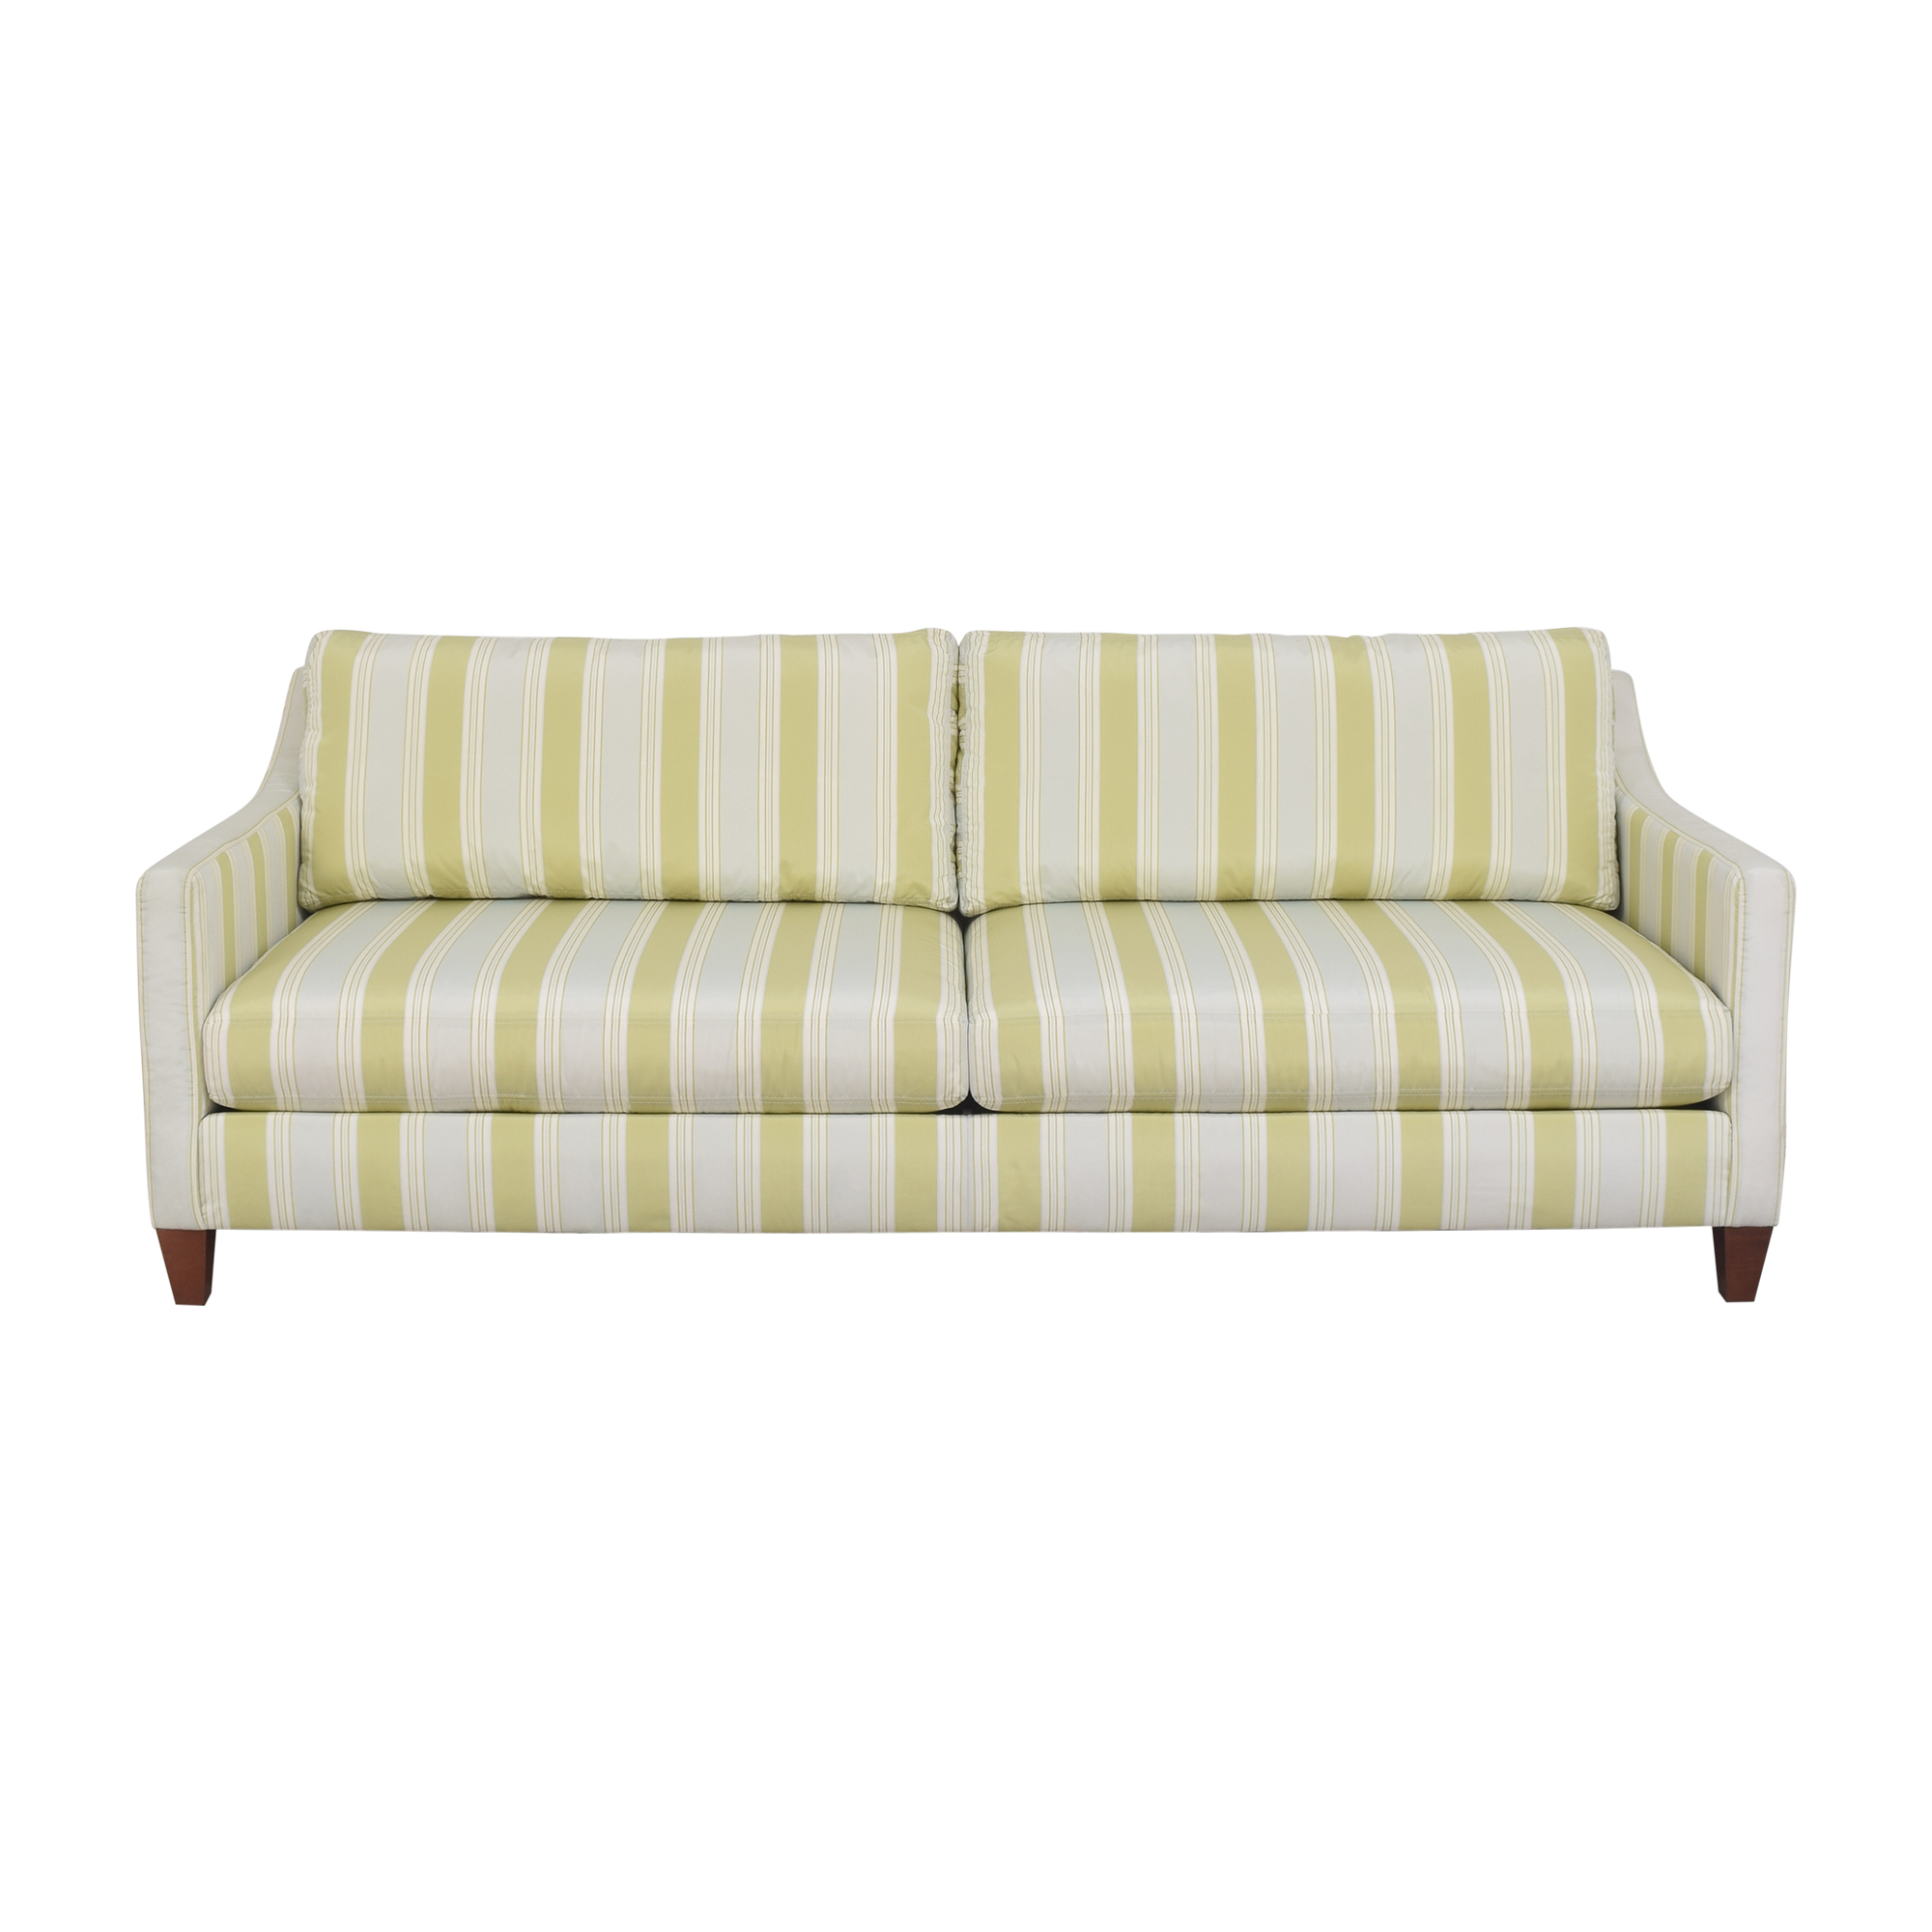 buy Ethan Allen Ethan Allen Striped Two Cushion Sofa online